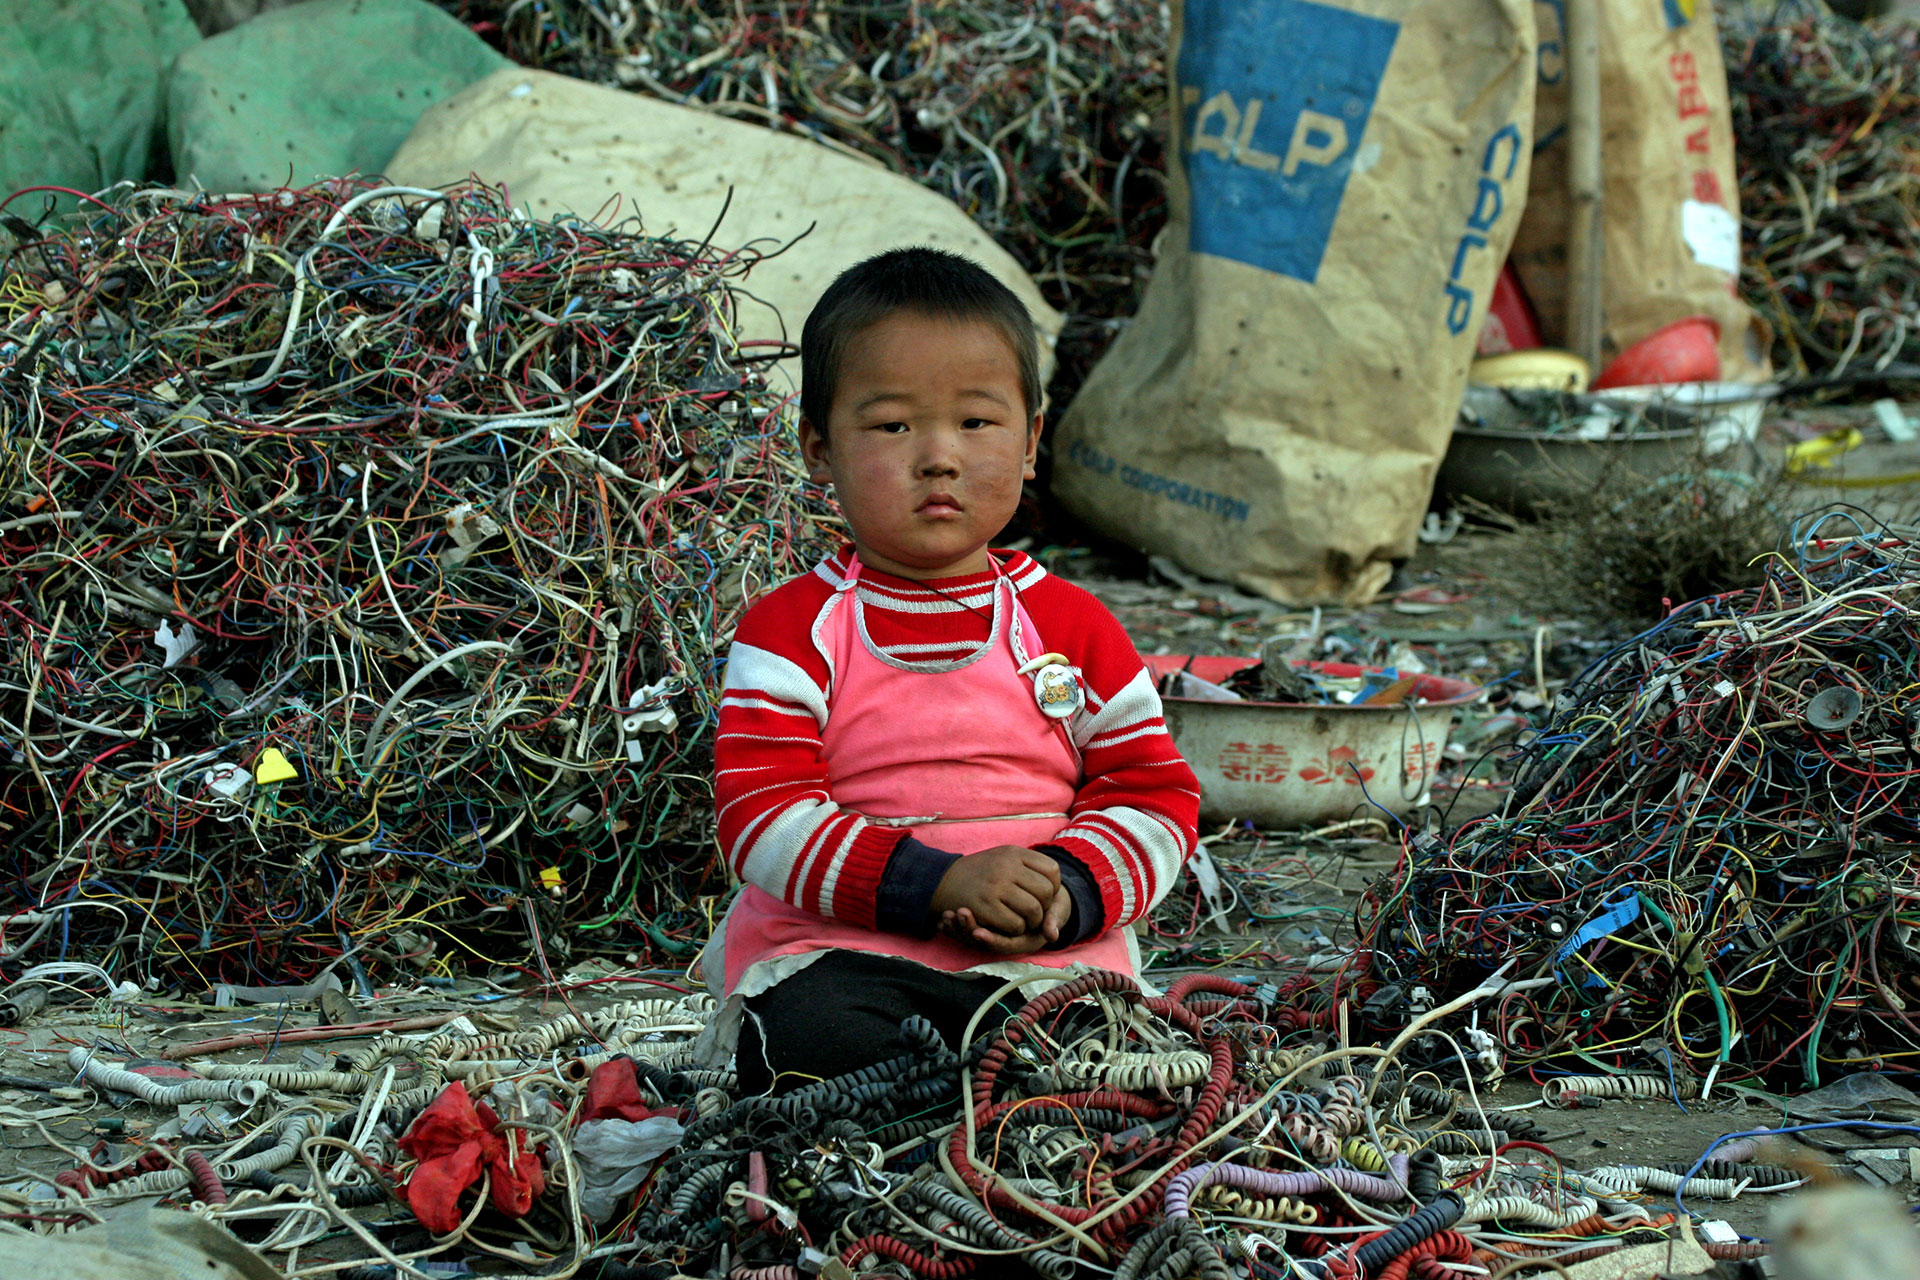 Toxics e-Waste Documentation in China © Greenpeace / Natalie Behring